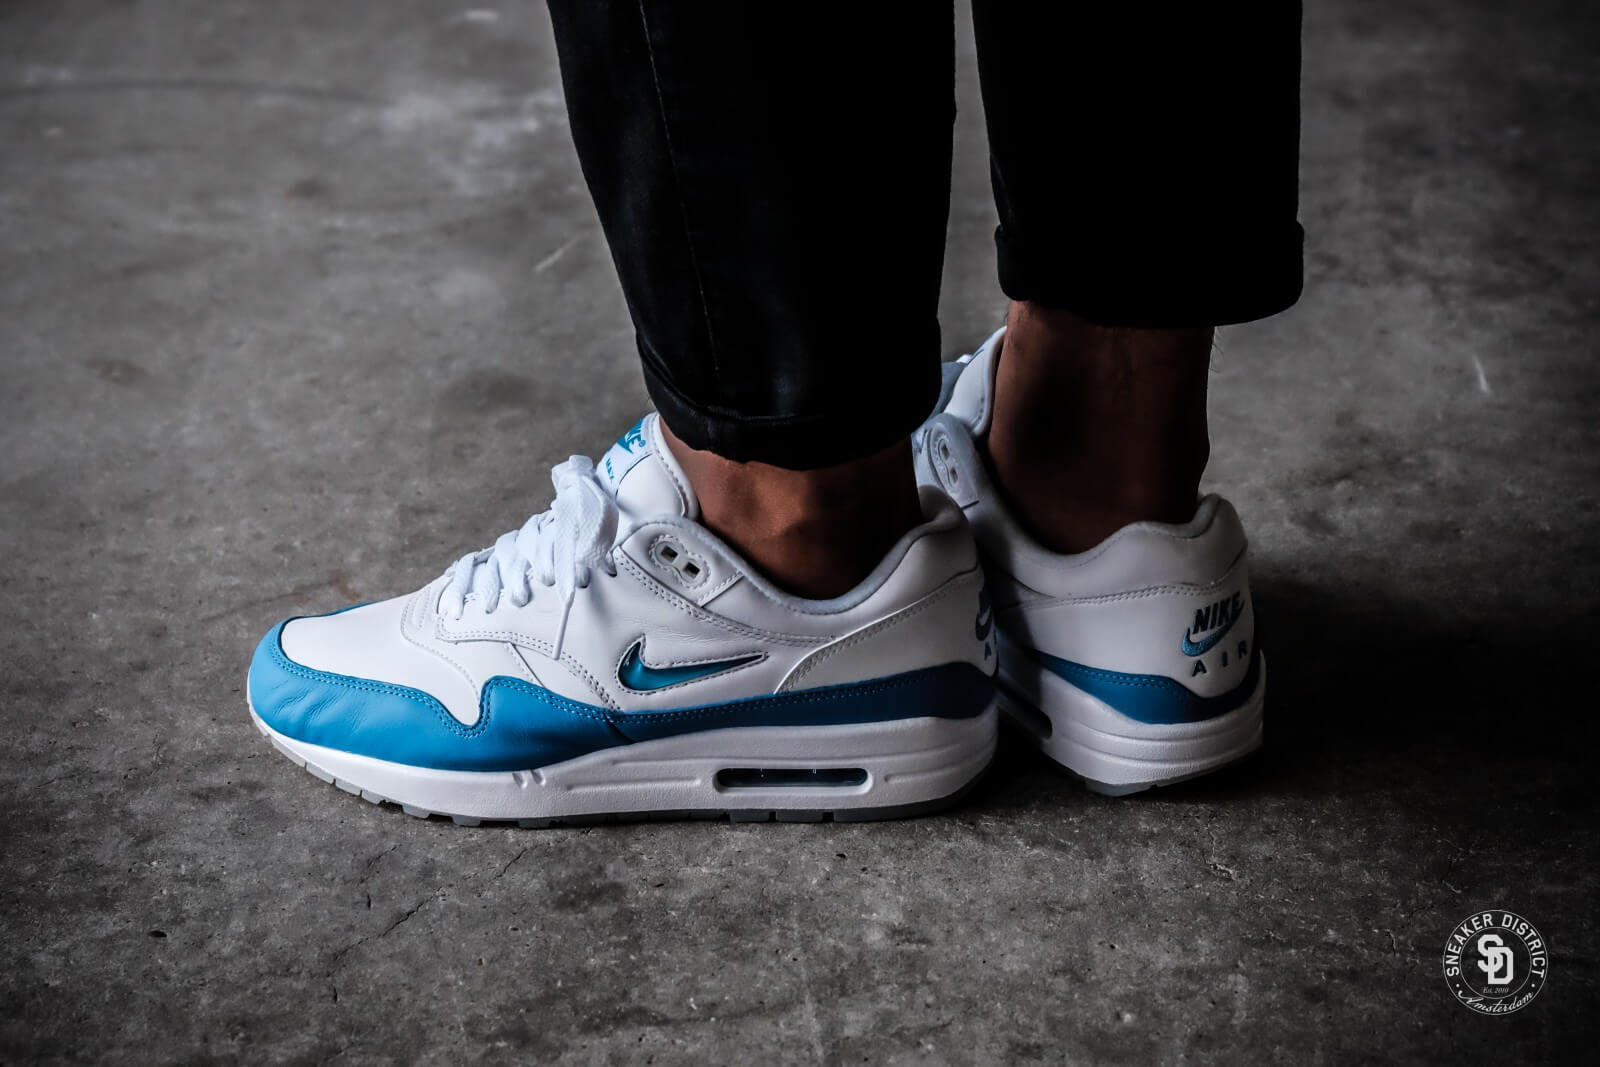 Nike Air Max 1 Premium SC Jewel WhiteUniversity Blue 918354 102